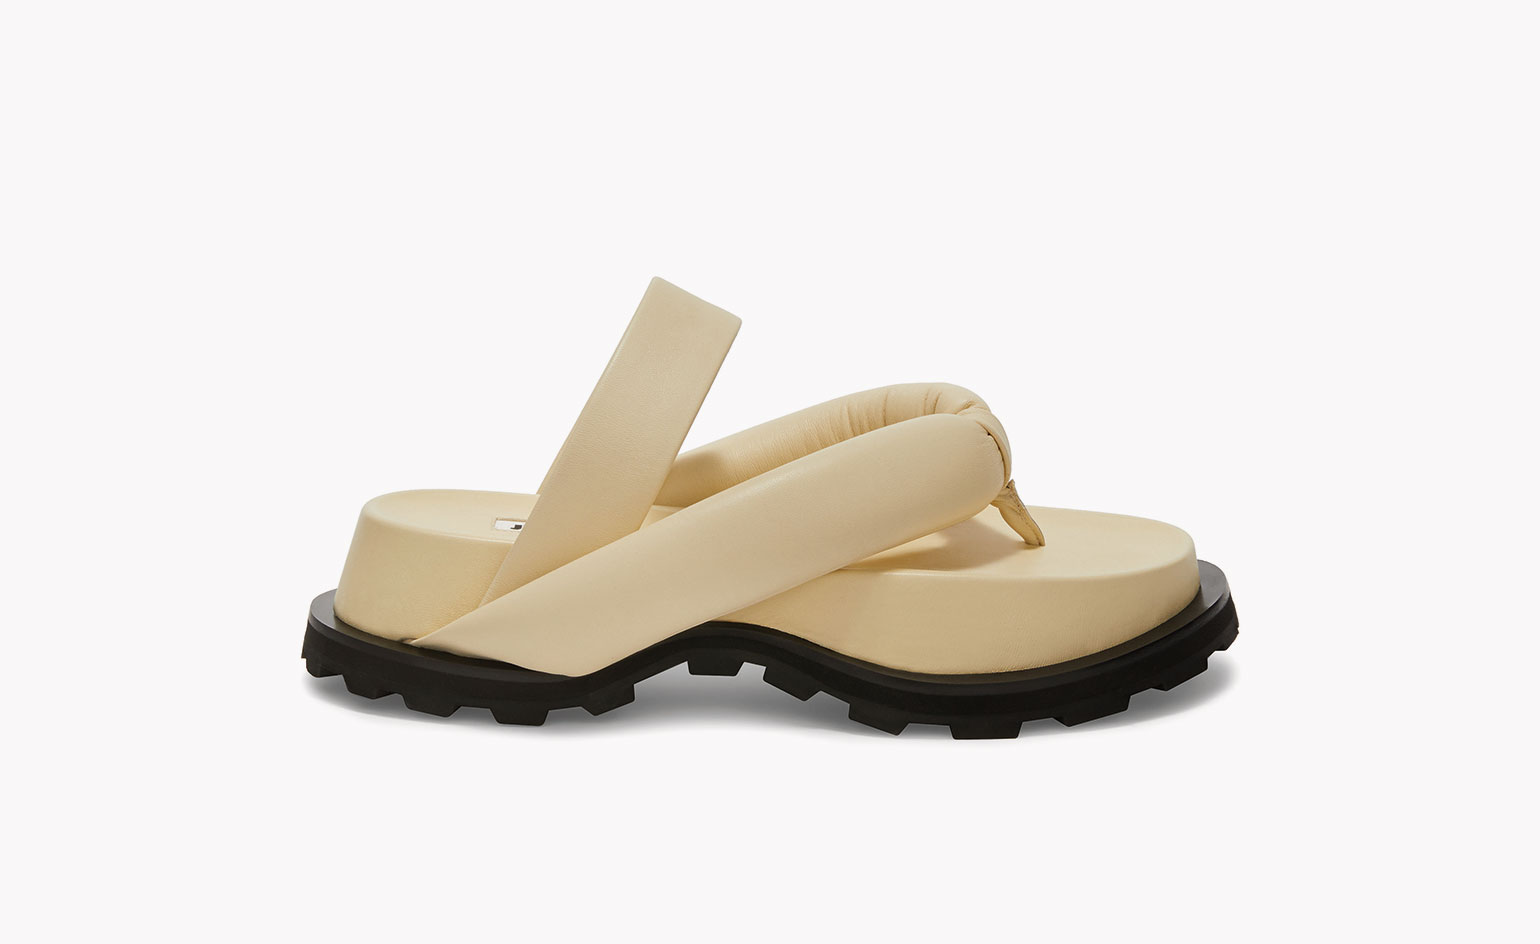 summer sandals in Japanese style by Jil Sander